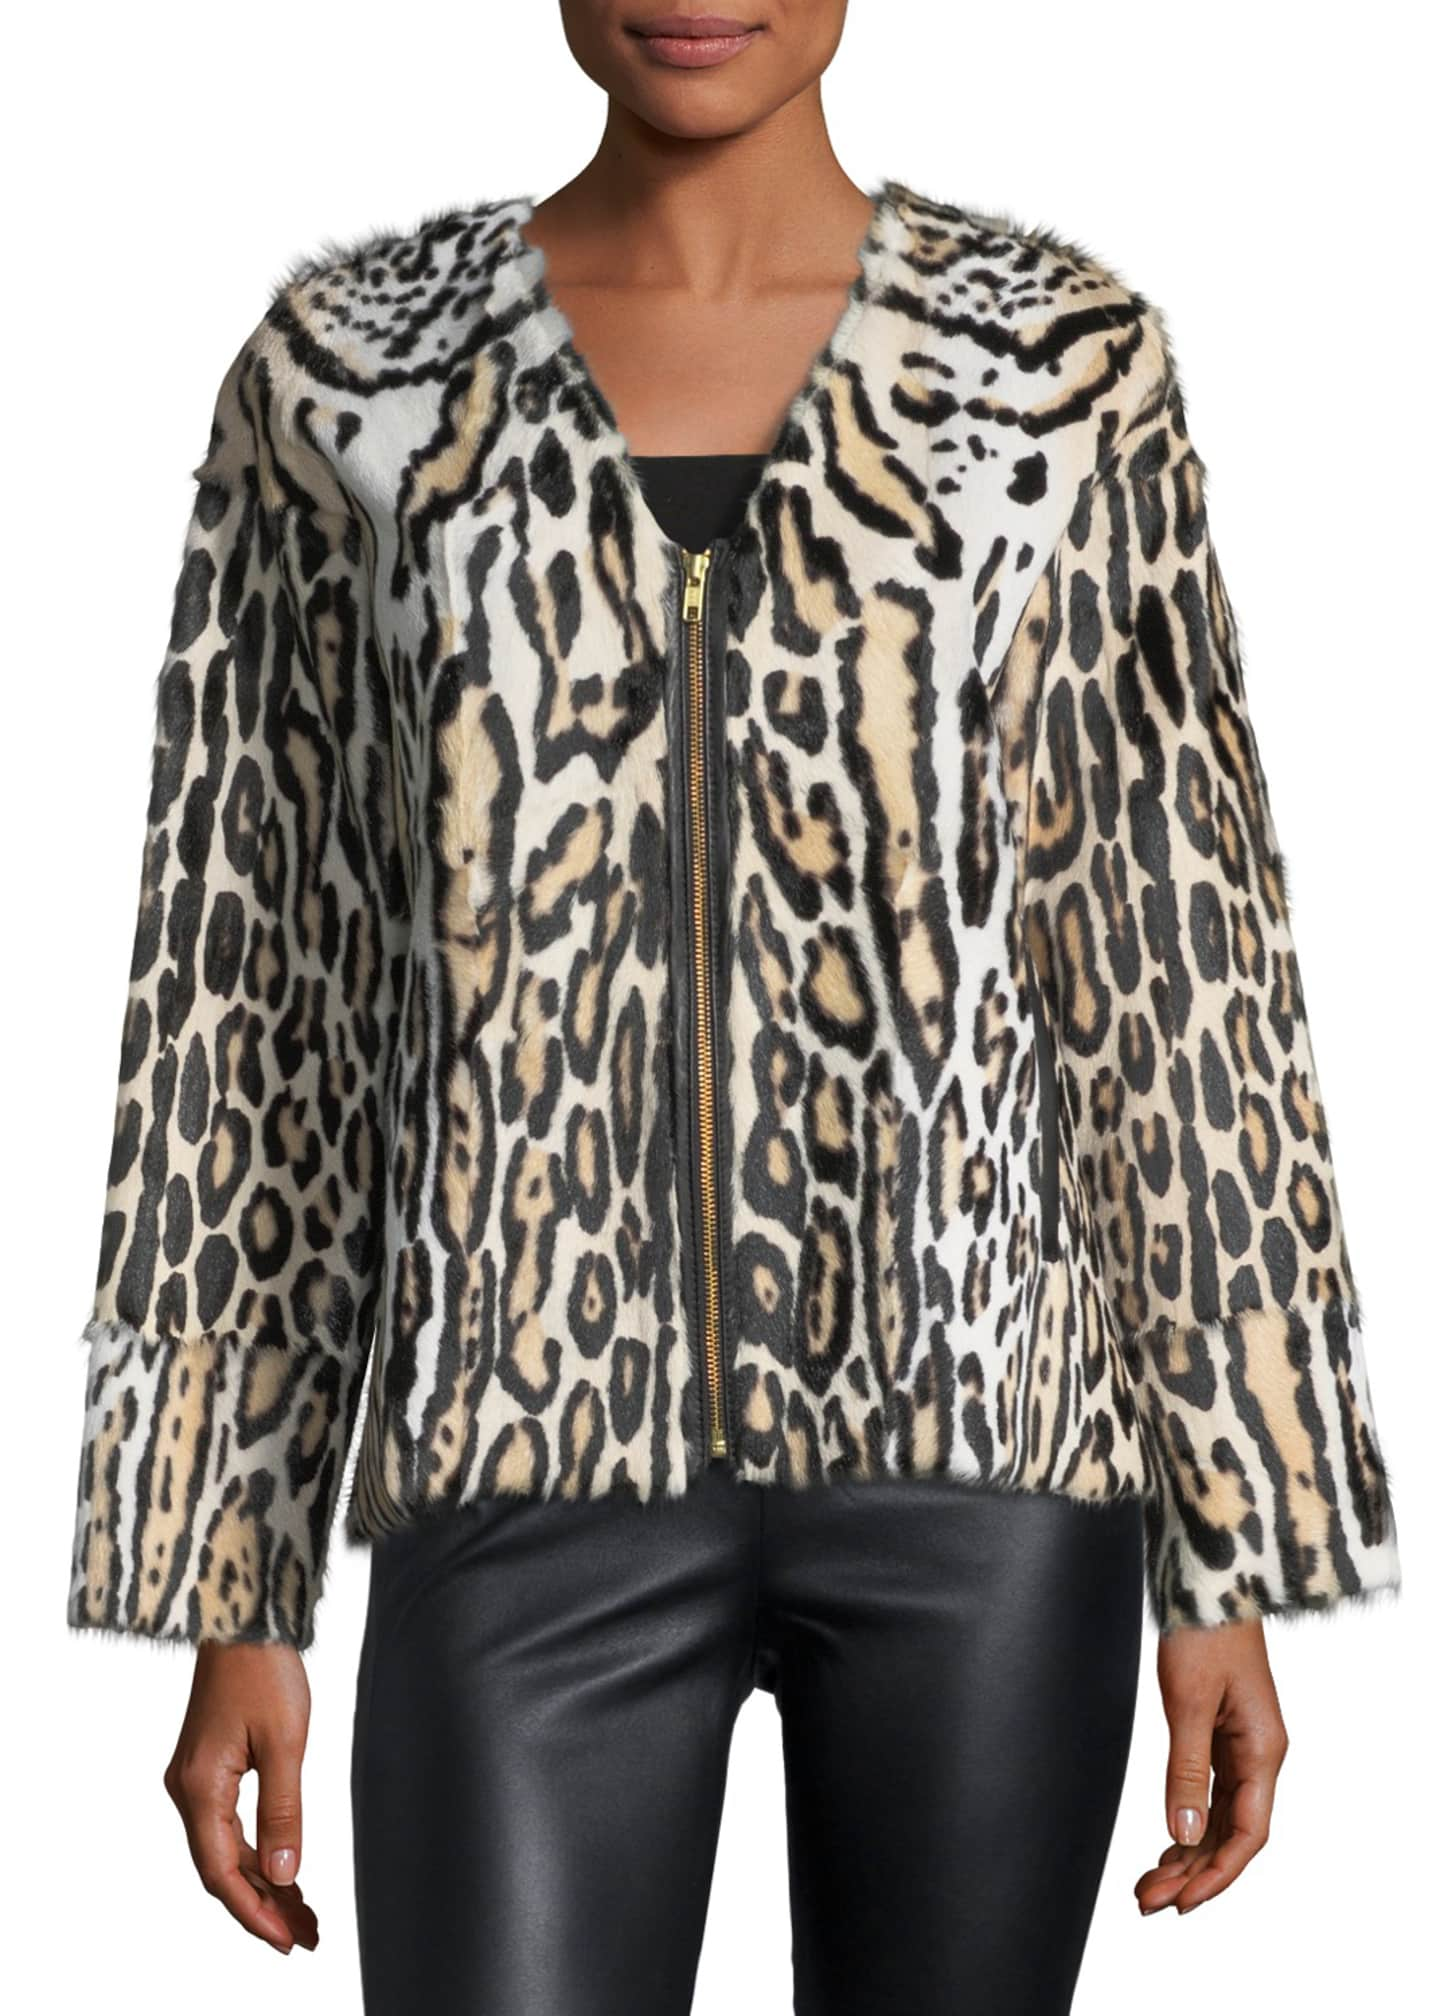 Image 3 of 3: UTZON LEOPARD JACKET